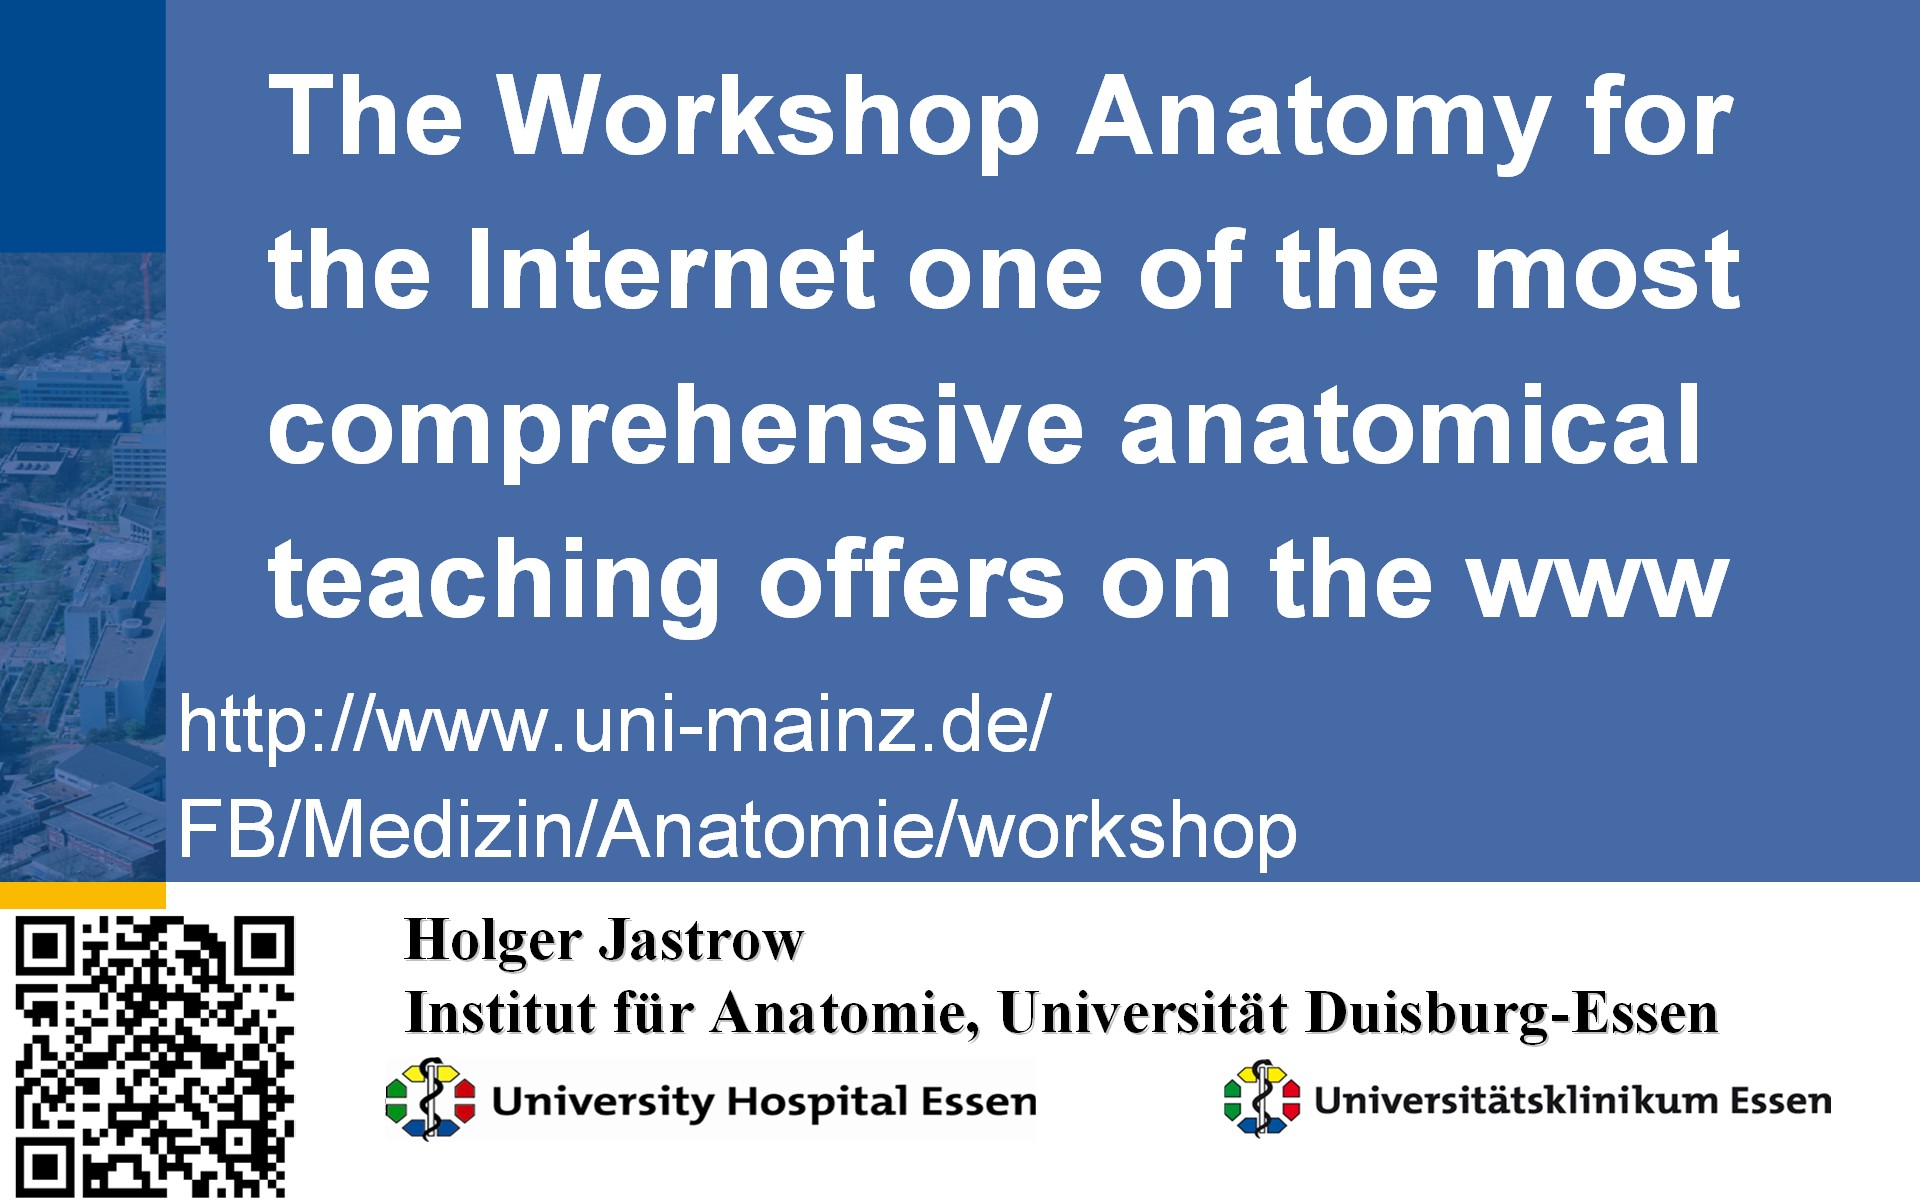 Information on the Workshop Anatomy for the internet